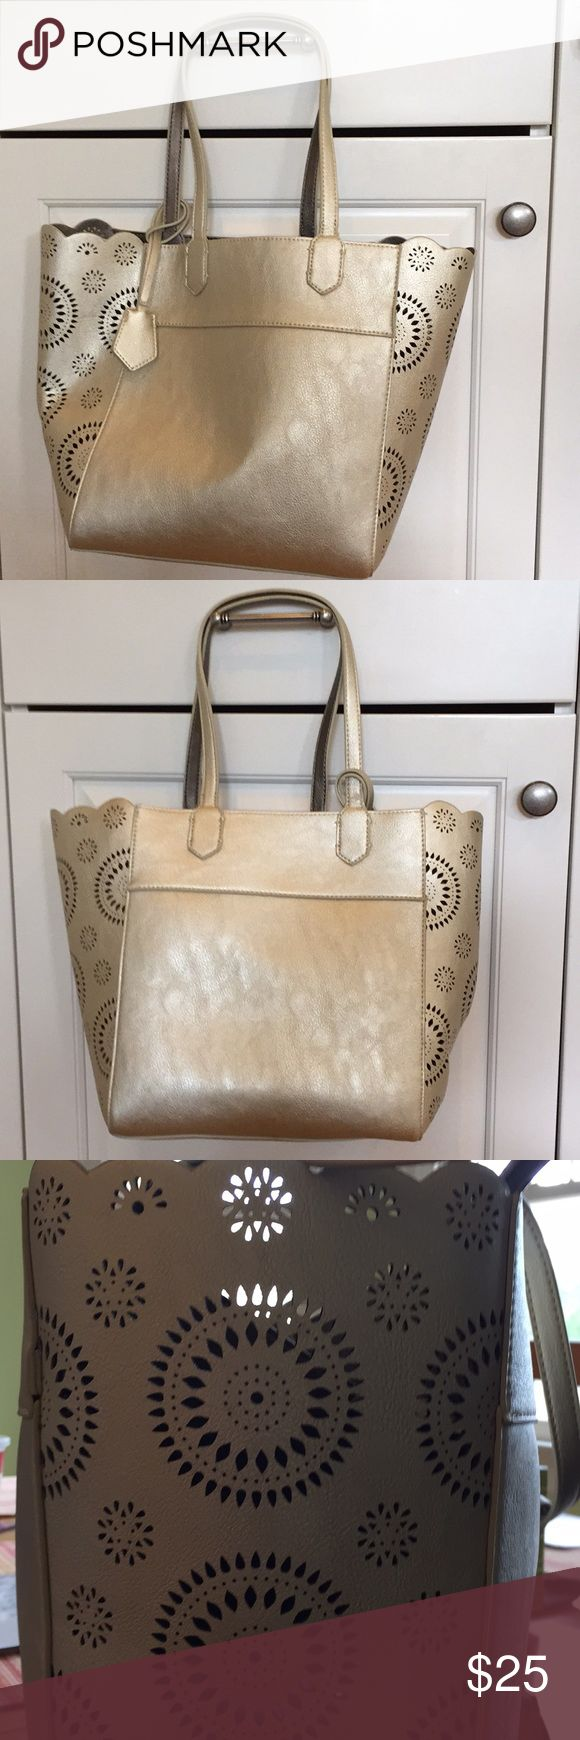 Anthropologie gold bag Super cute Anthropologie gold bag. Includes a zipper pouch inside. No zipper or other closure on top. Excellent condition. Never been used. Tags still on. Anthropologie Bags Hobos